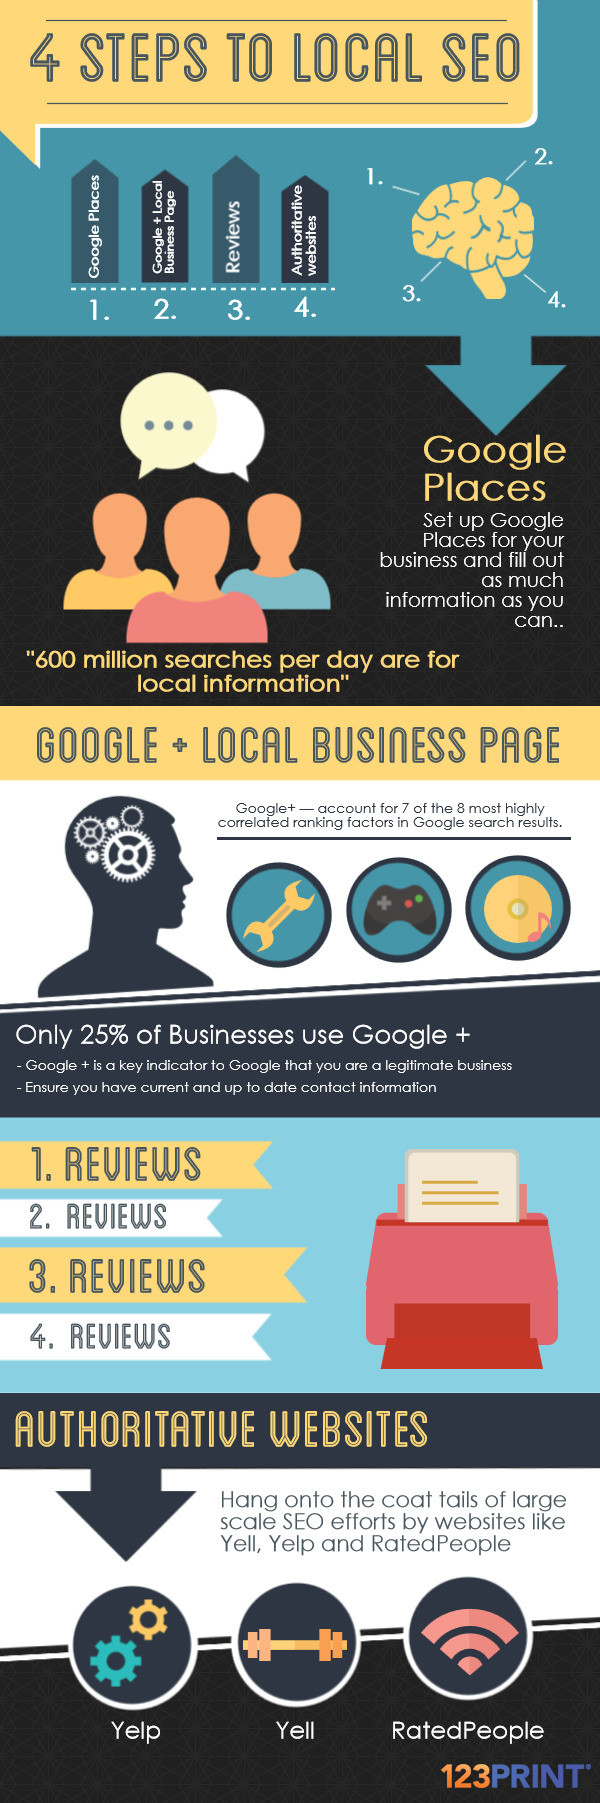 6 Easy Local SEO tips to help customers find you on Google